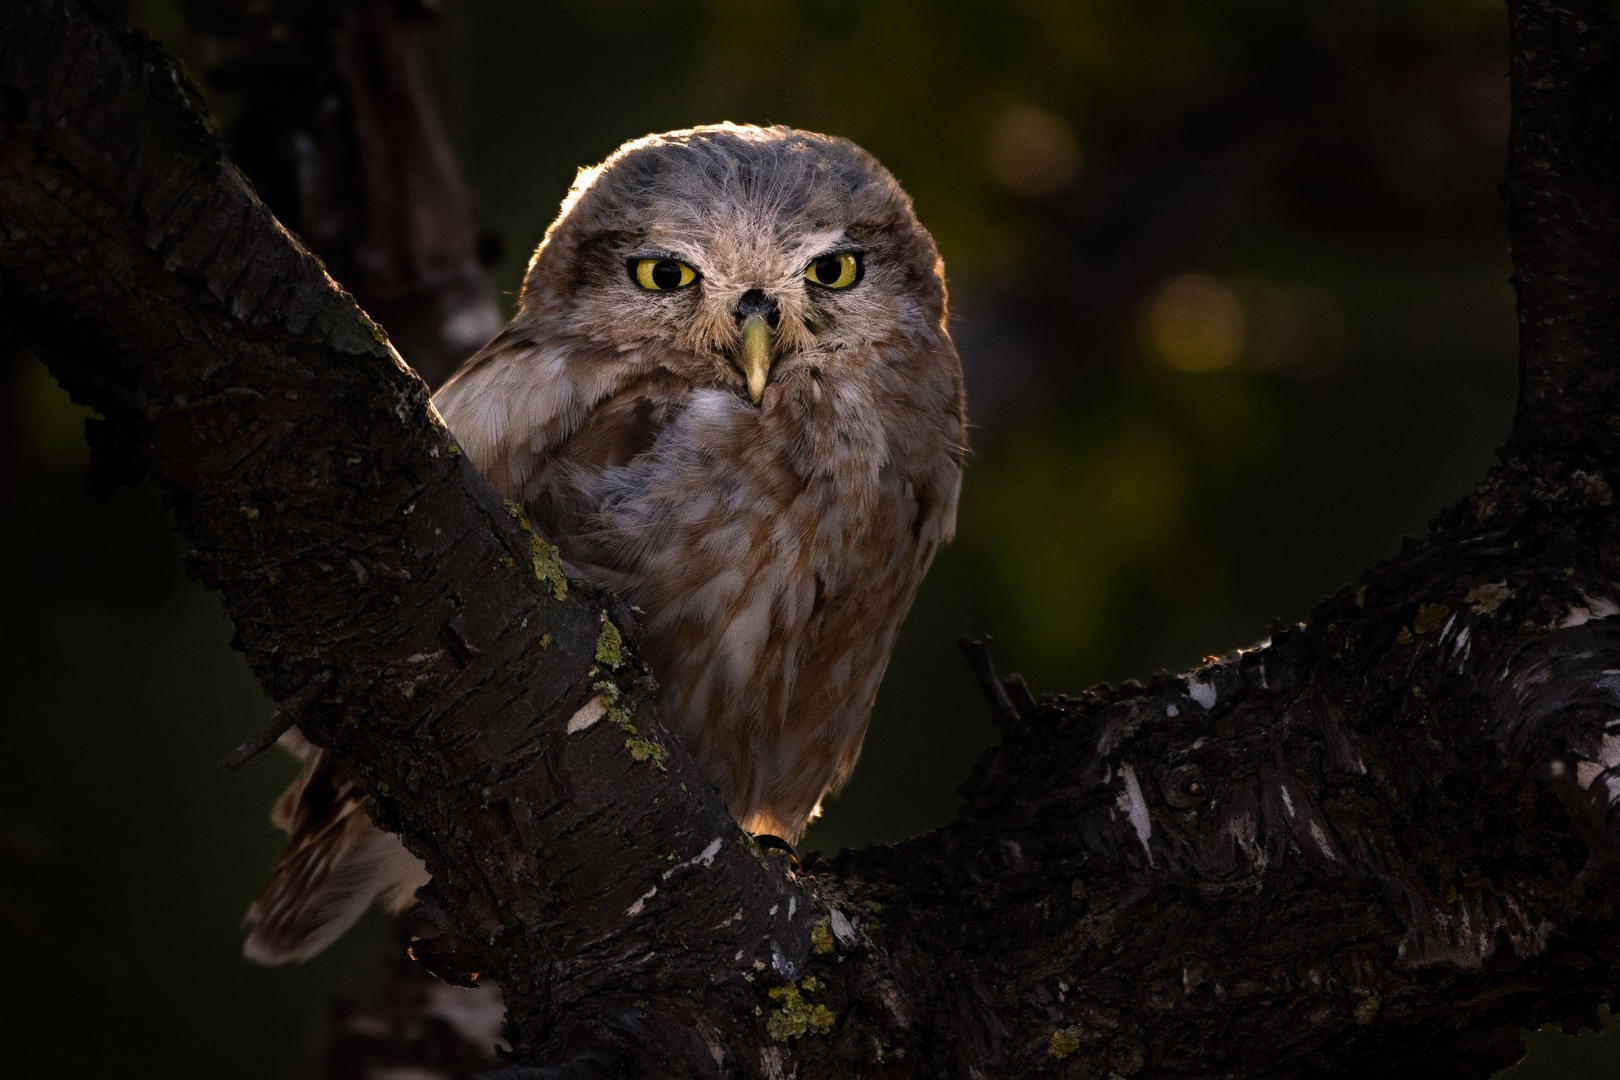 Little Owl focused at a potential meal by Ariel Fields